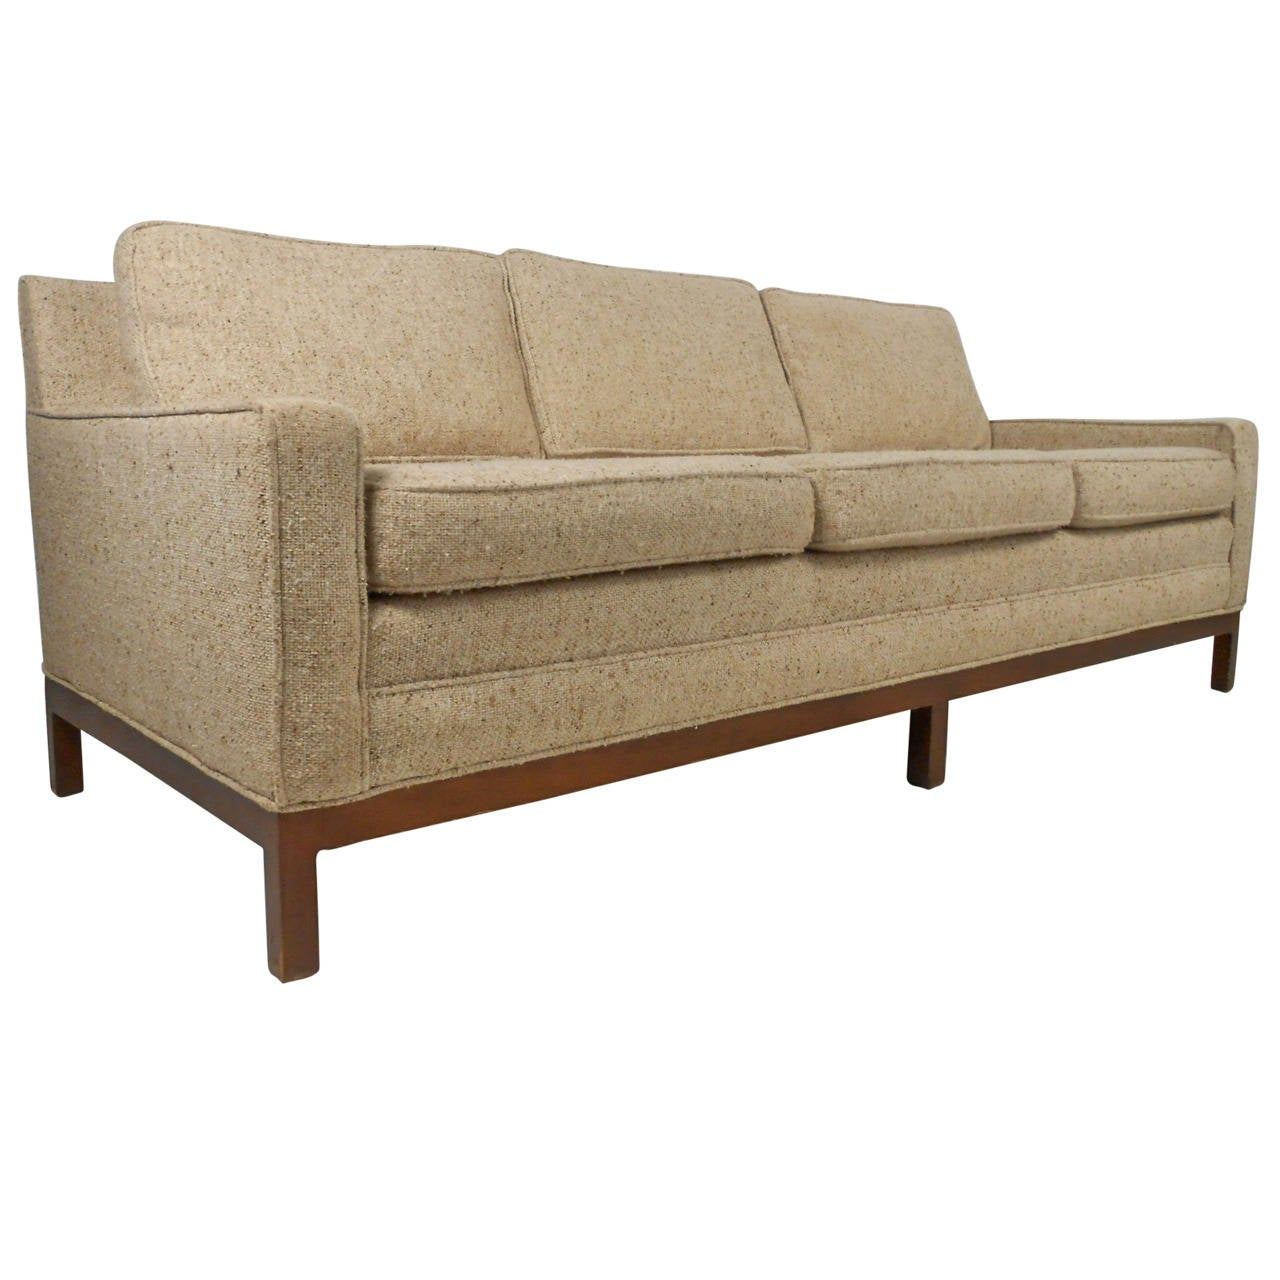 Stylish vintage modern sofa after florence knoll for sale for Florence modern sectional sofa